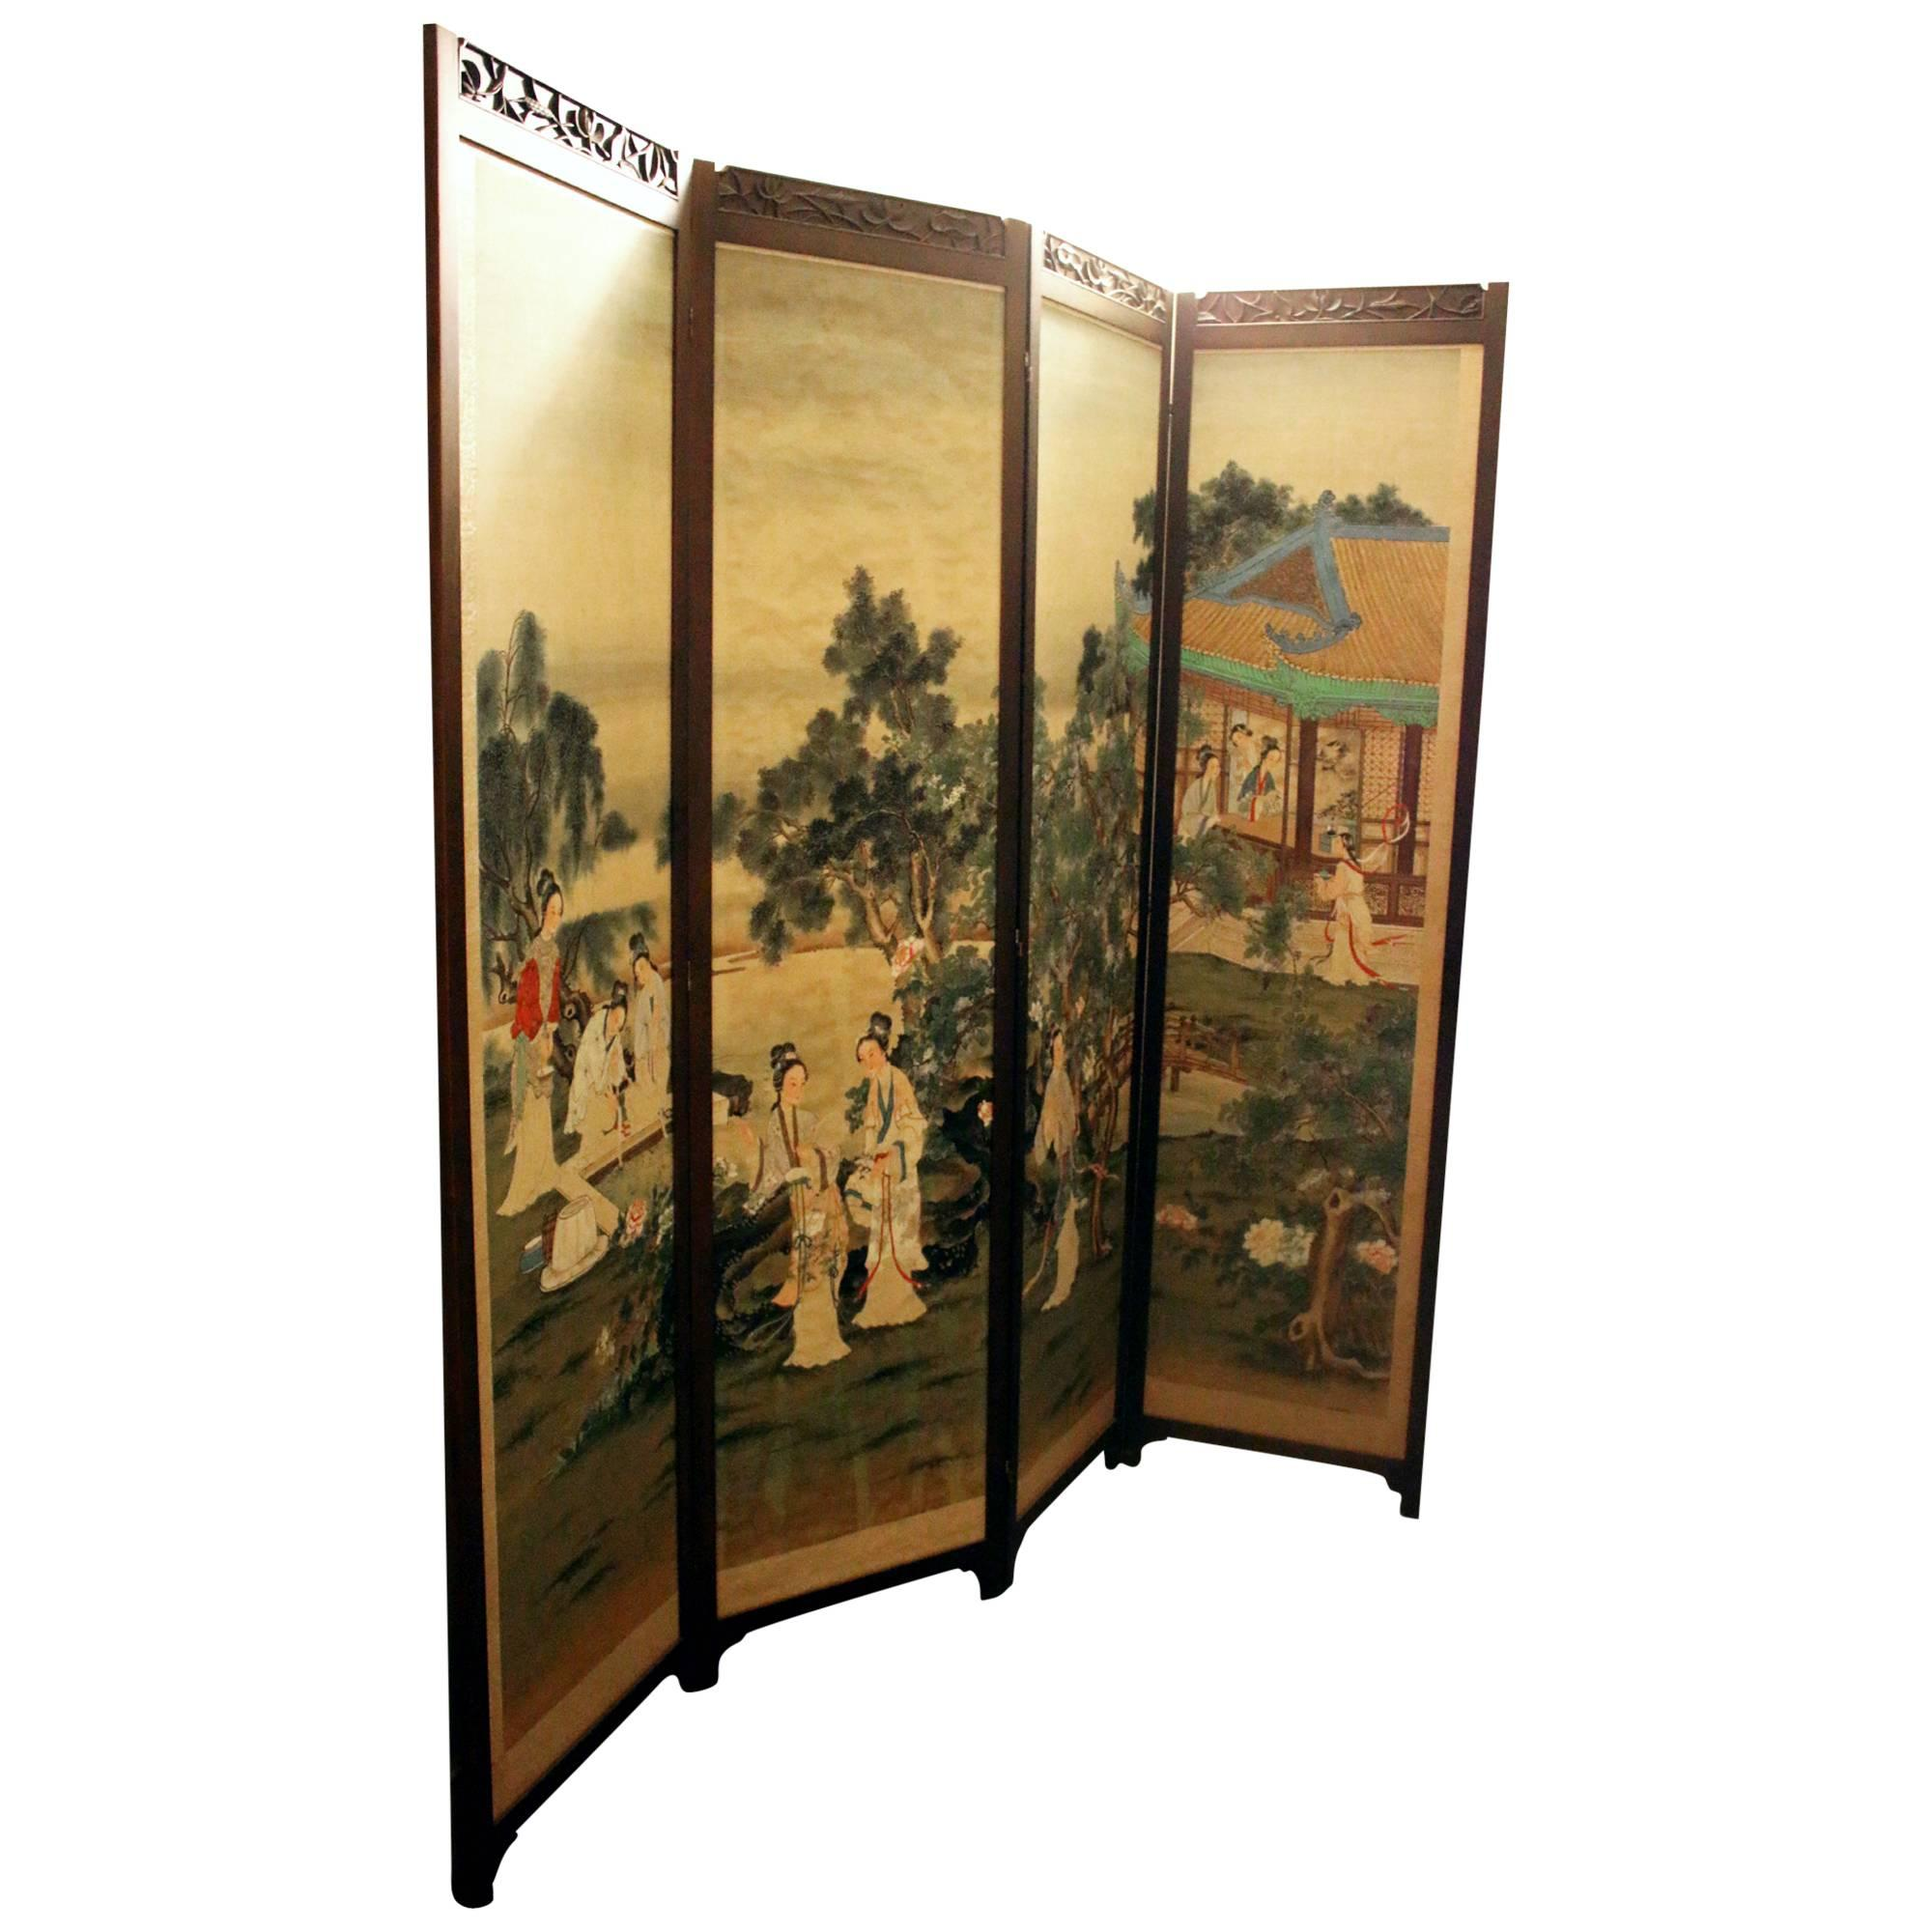 19th century Chinese Four-Panel Screen in Teak Wood Frame